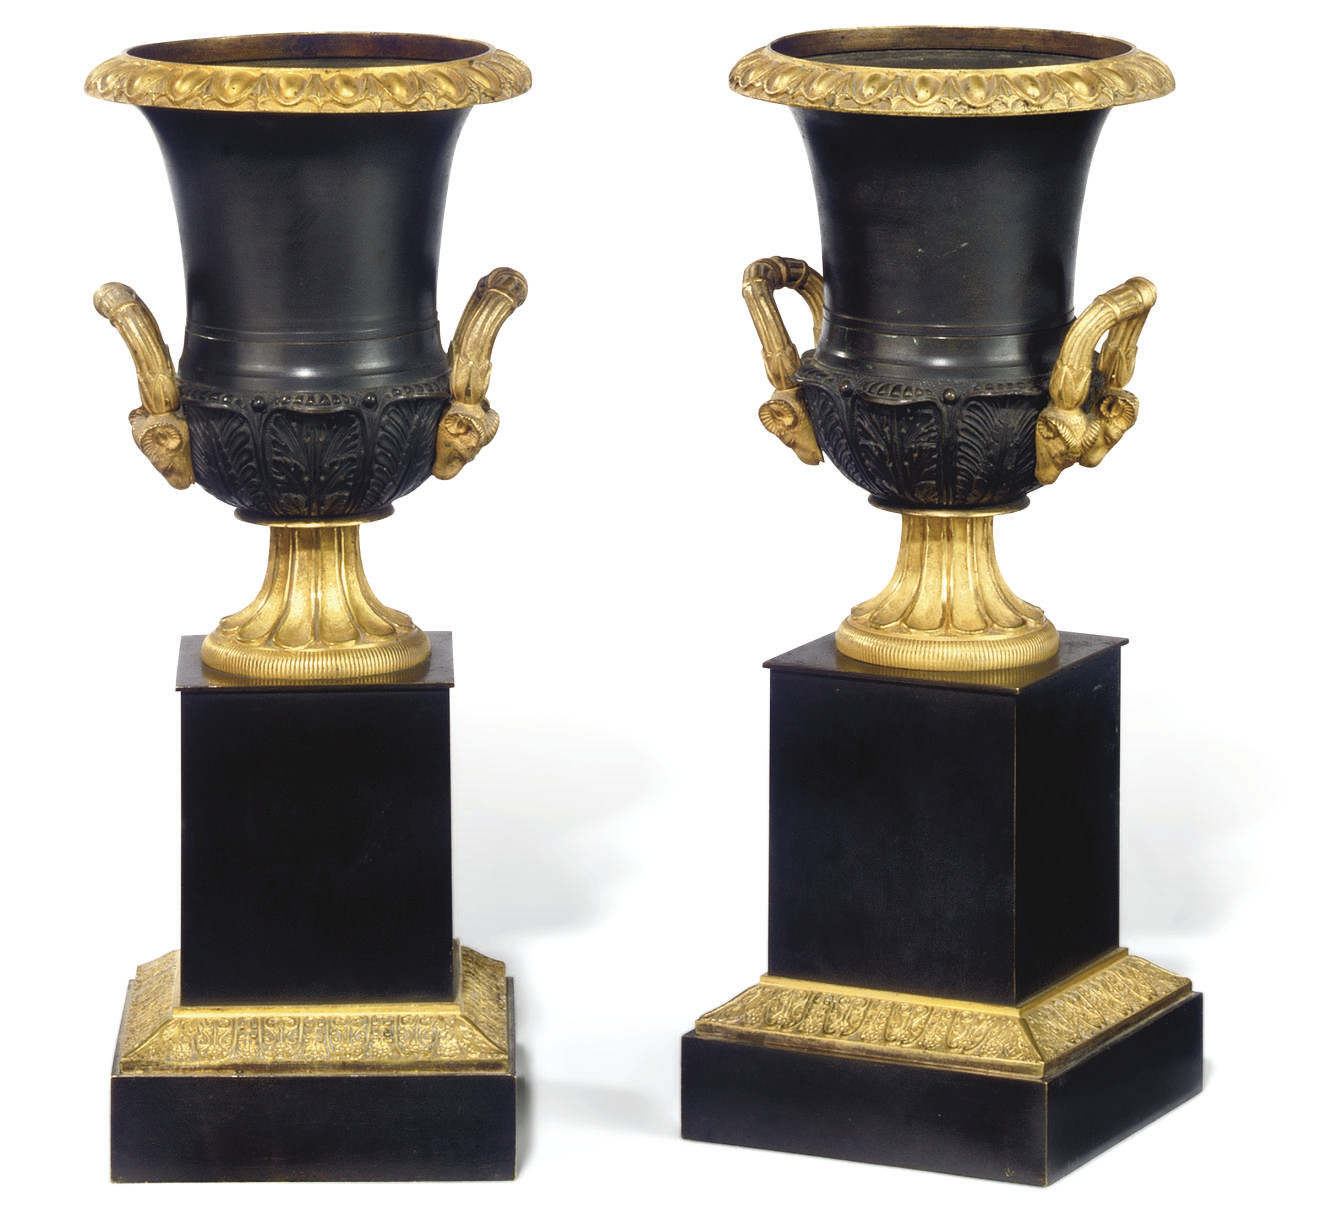 A PAIR OF RESTAURATION GILT AND PATINATED BRONZE URNS